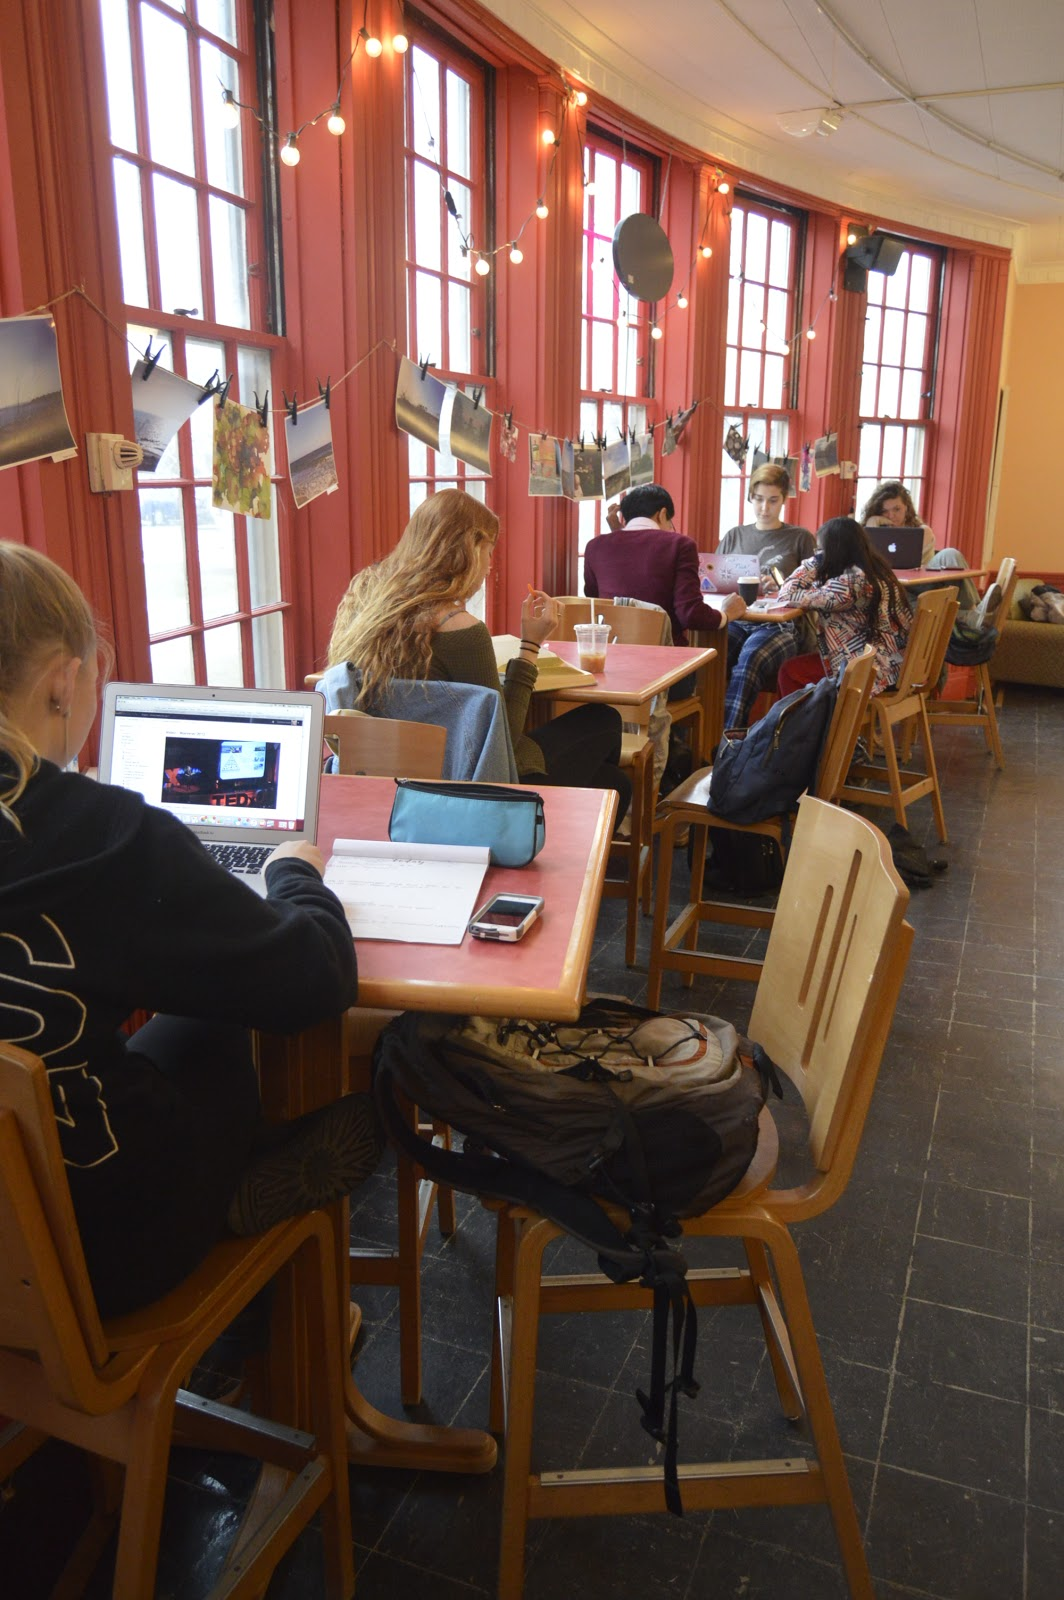 Students studying in front of the bright windows in the Coffee Closet